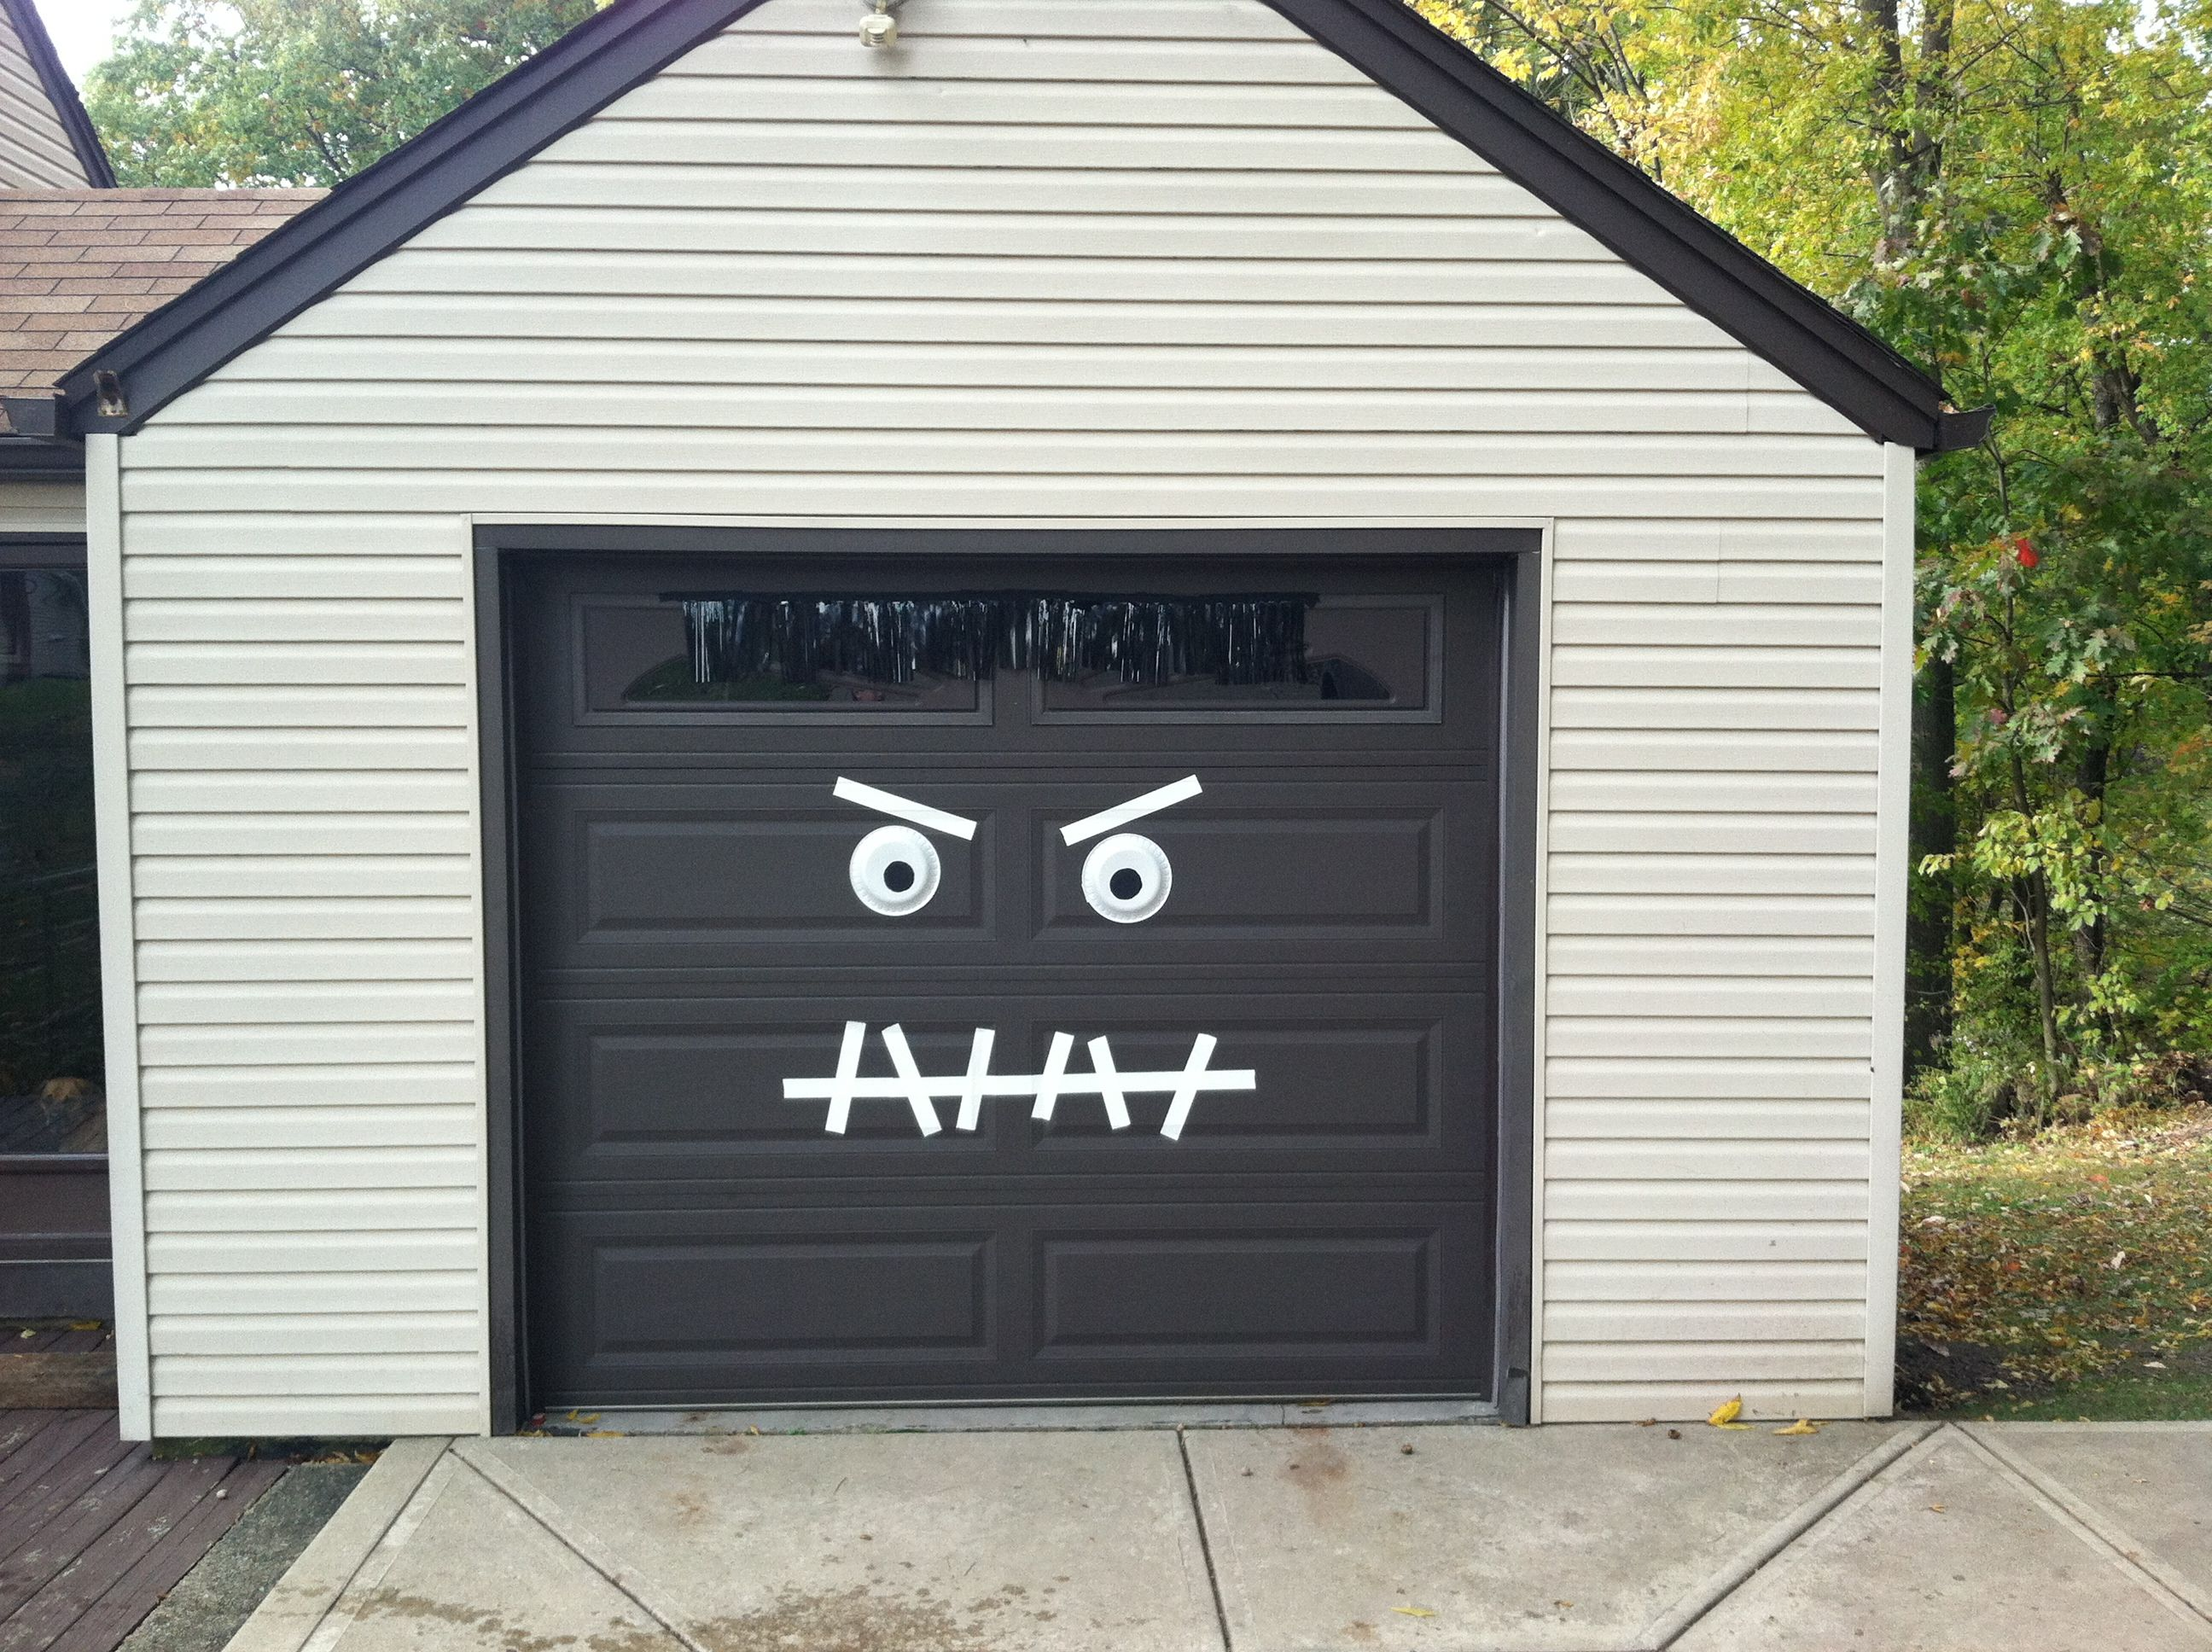 Monster garage door halloween decoration easy 2 make for Decoration garage